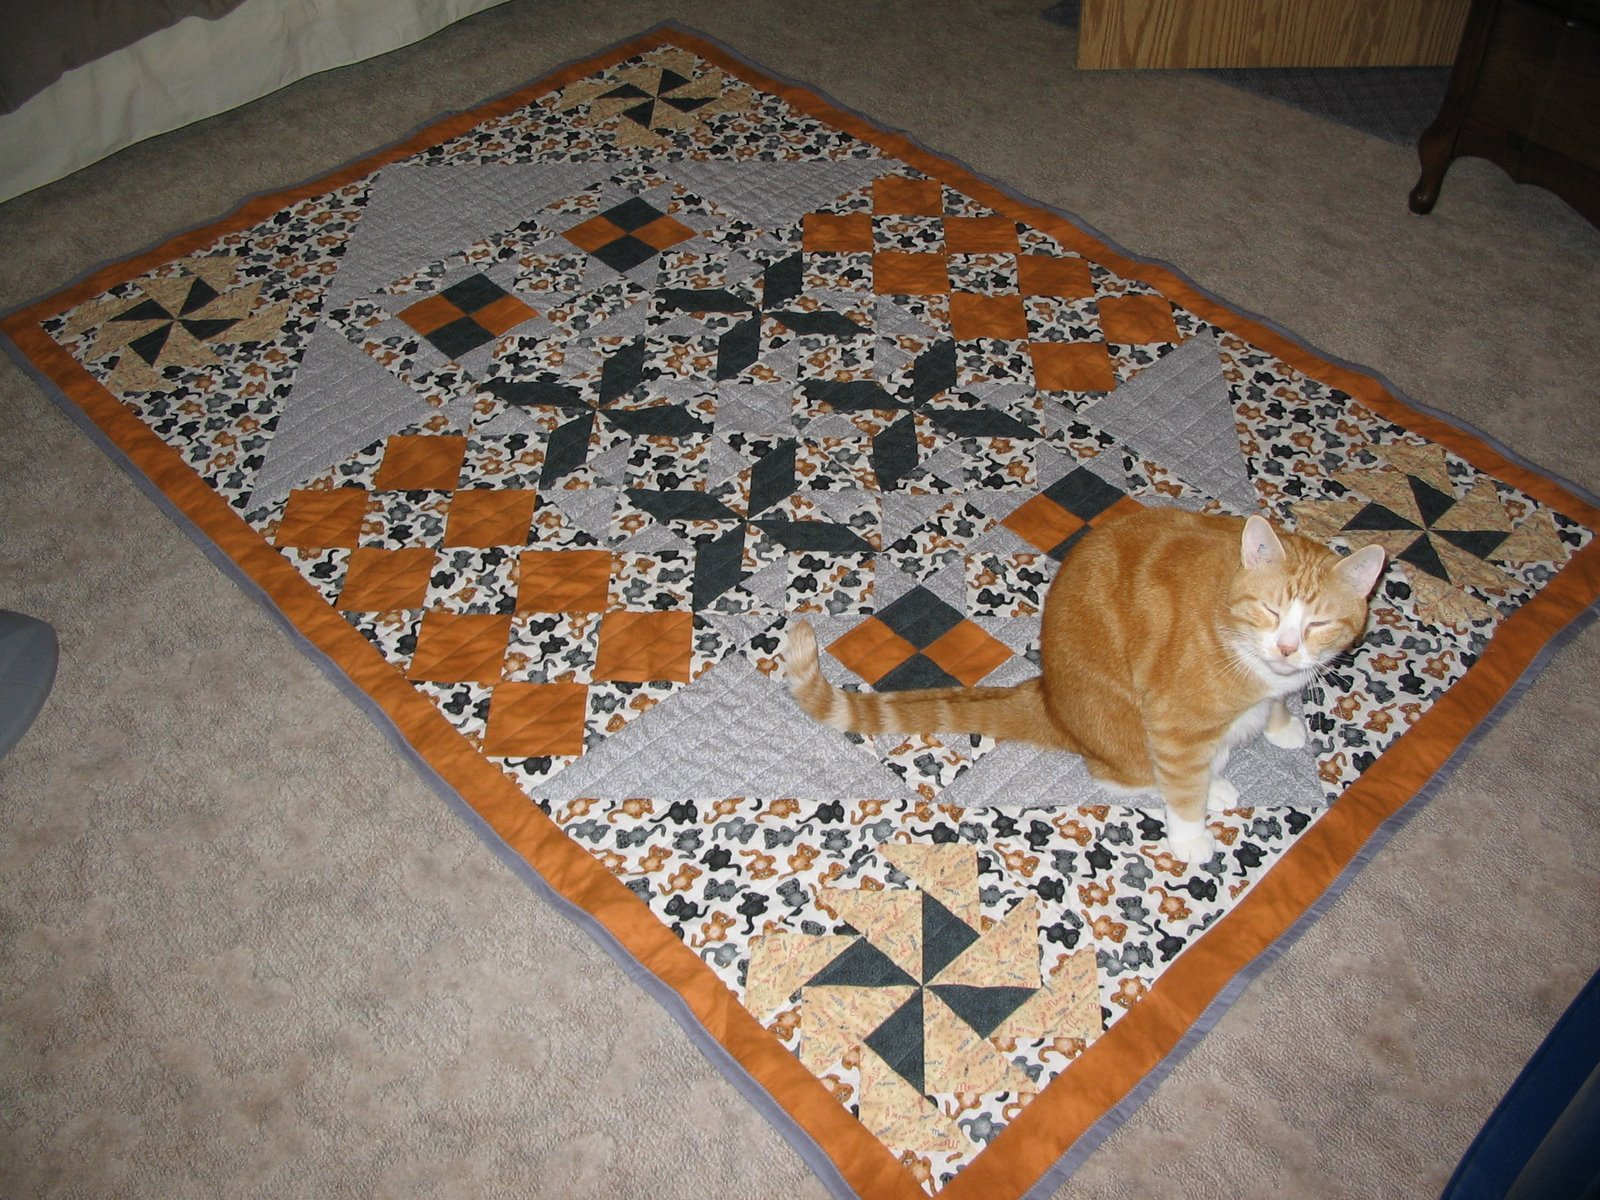 Photo: Strider modeling the quilt.